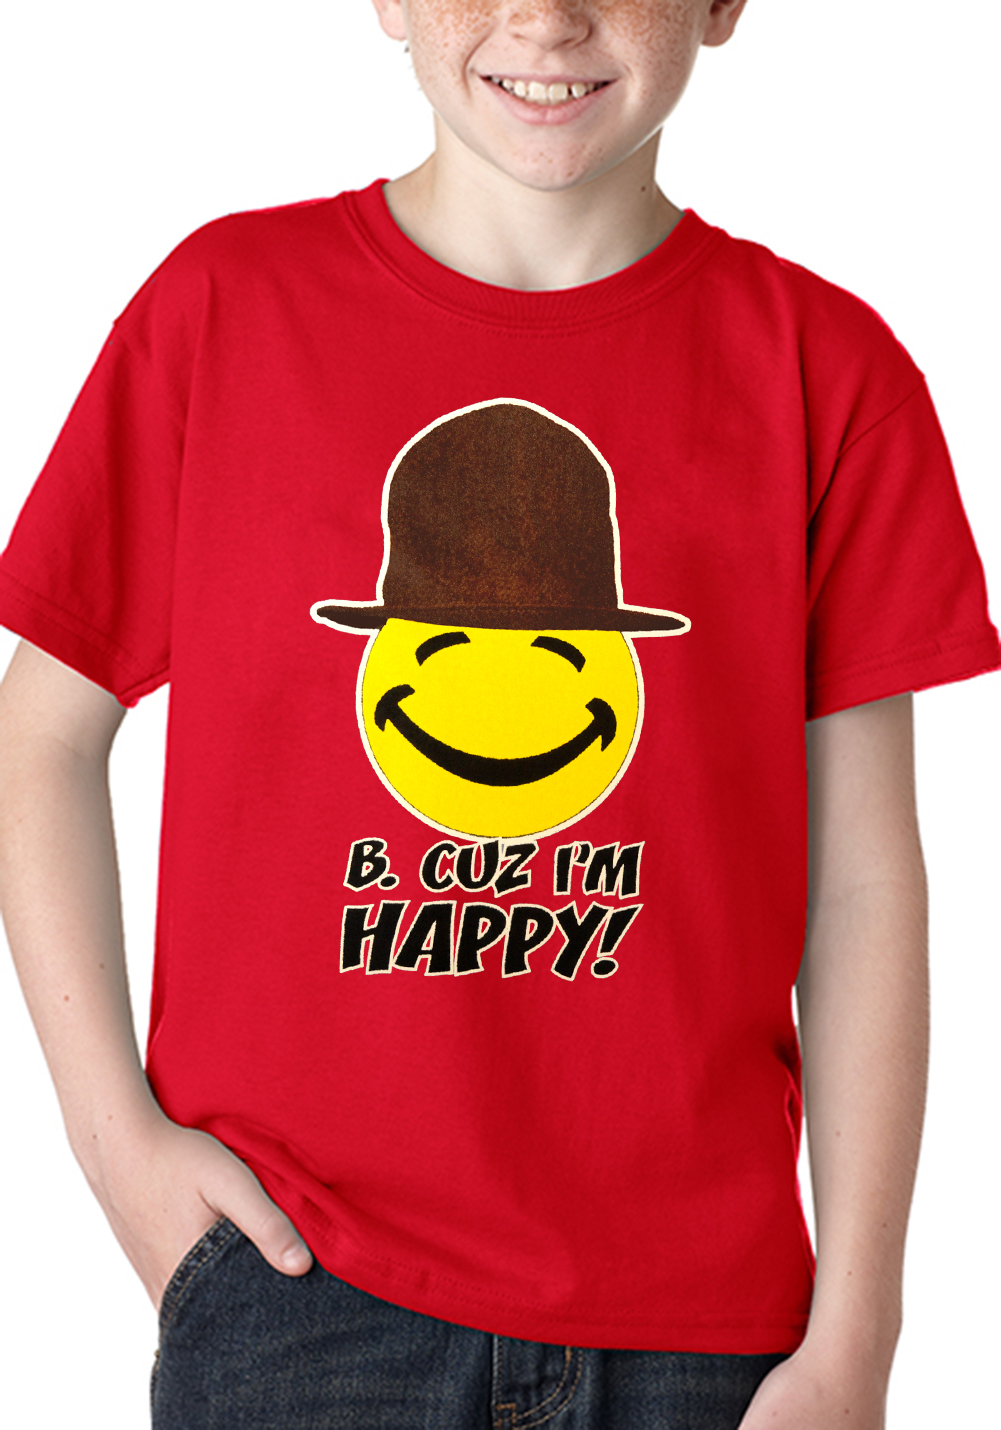 Buy I'm So Happy Here T-Shirt from northtercessbudh.cf This t-shirt is Made To Order, one by one printed so we can control the quality. We use newest DTG Technology to print on to I'm So Happy Here T-Shirt.